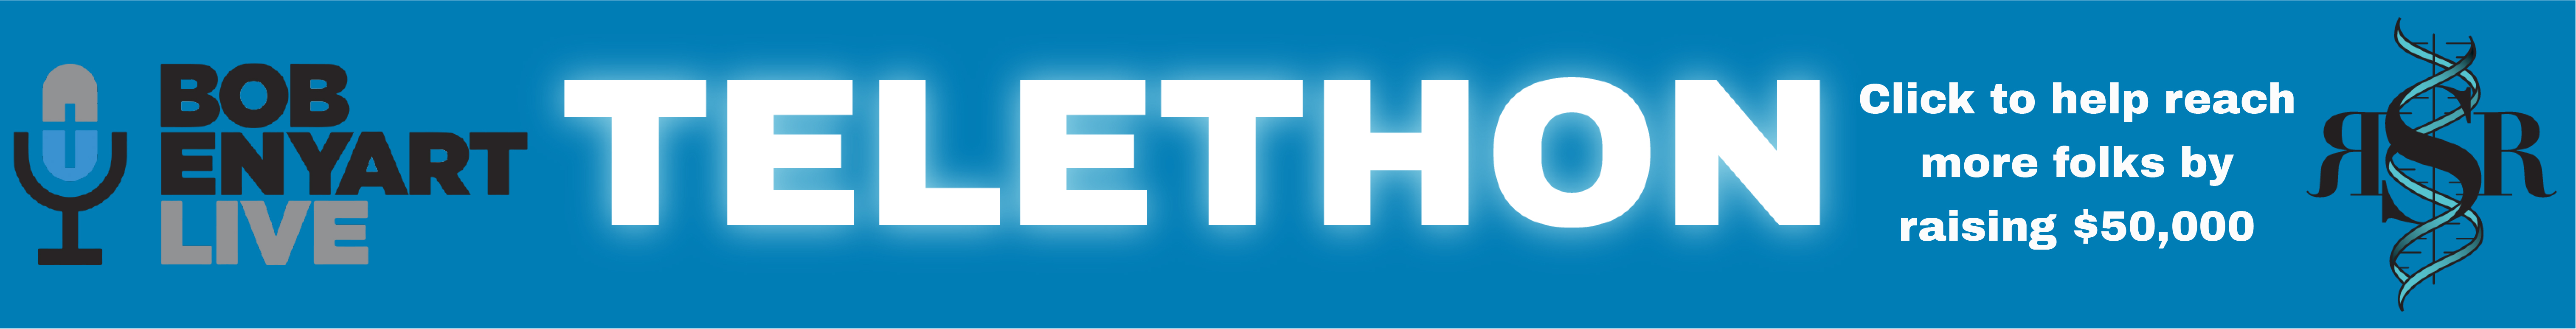 Telethon%20Banner%20Final%20Feb%202021-01.jpg